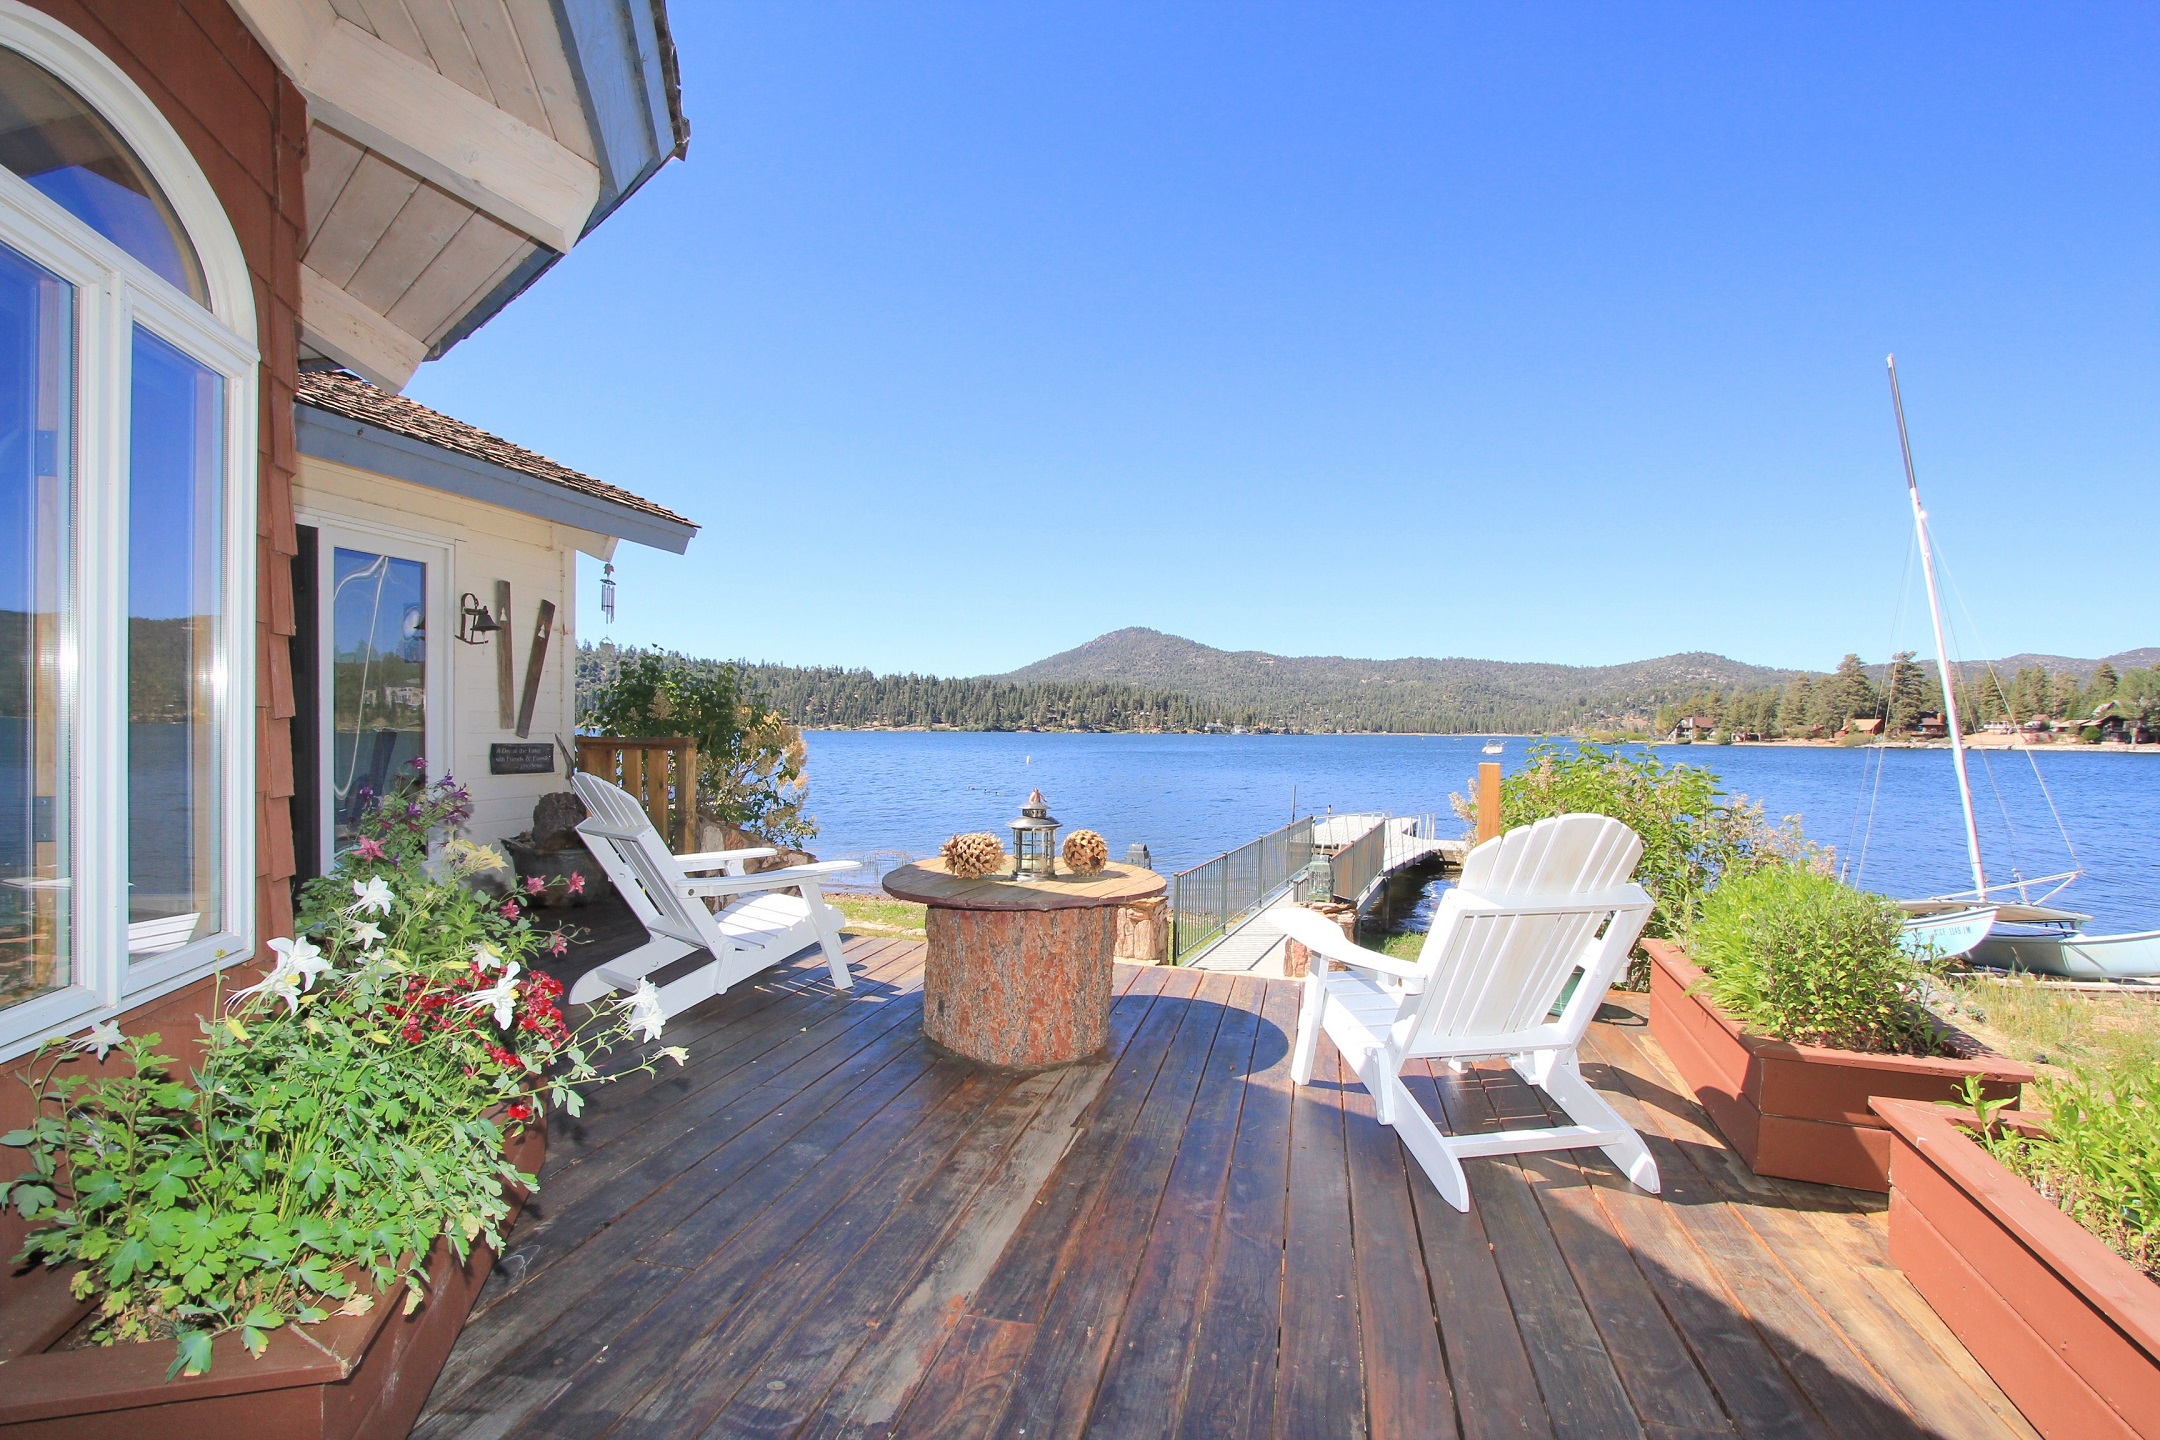 lakefront ask rental lake when cabins to in a big bear cabin blog beach sun ortega booking questions